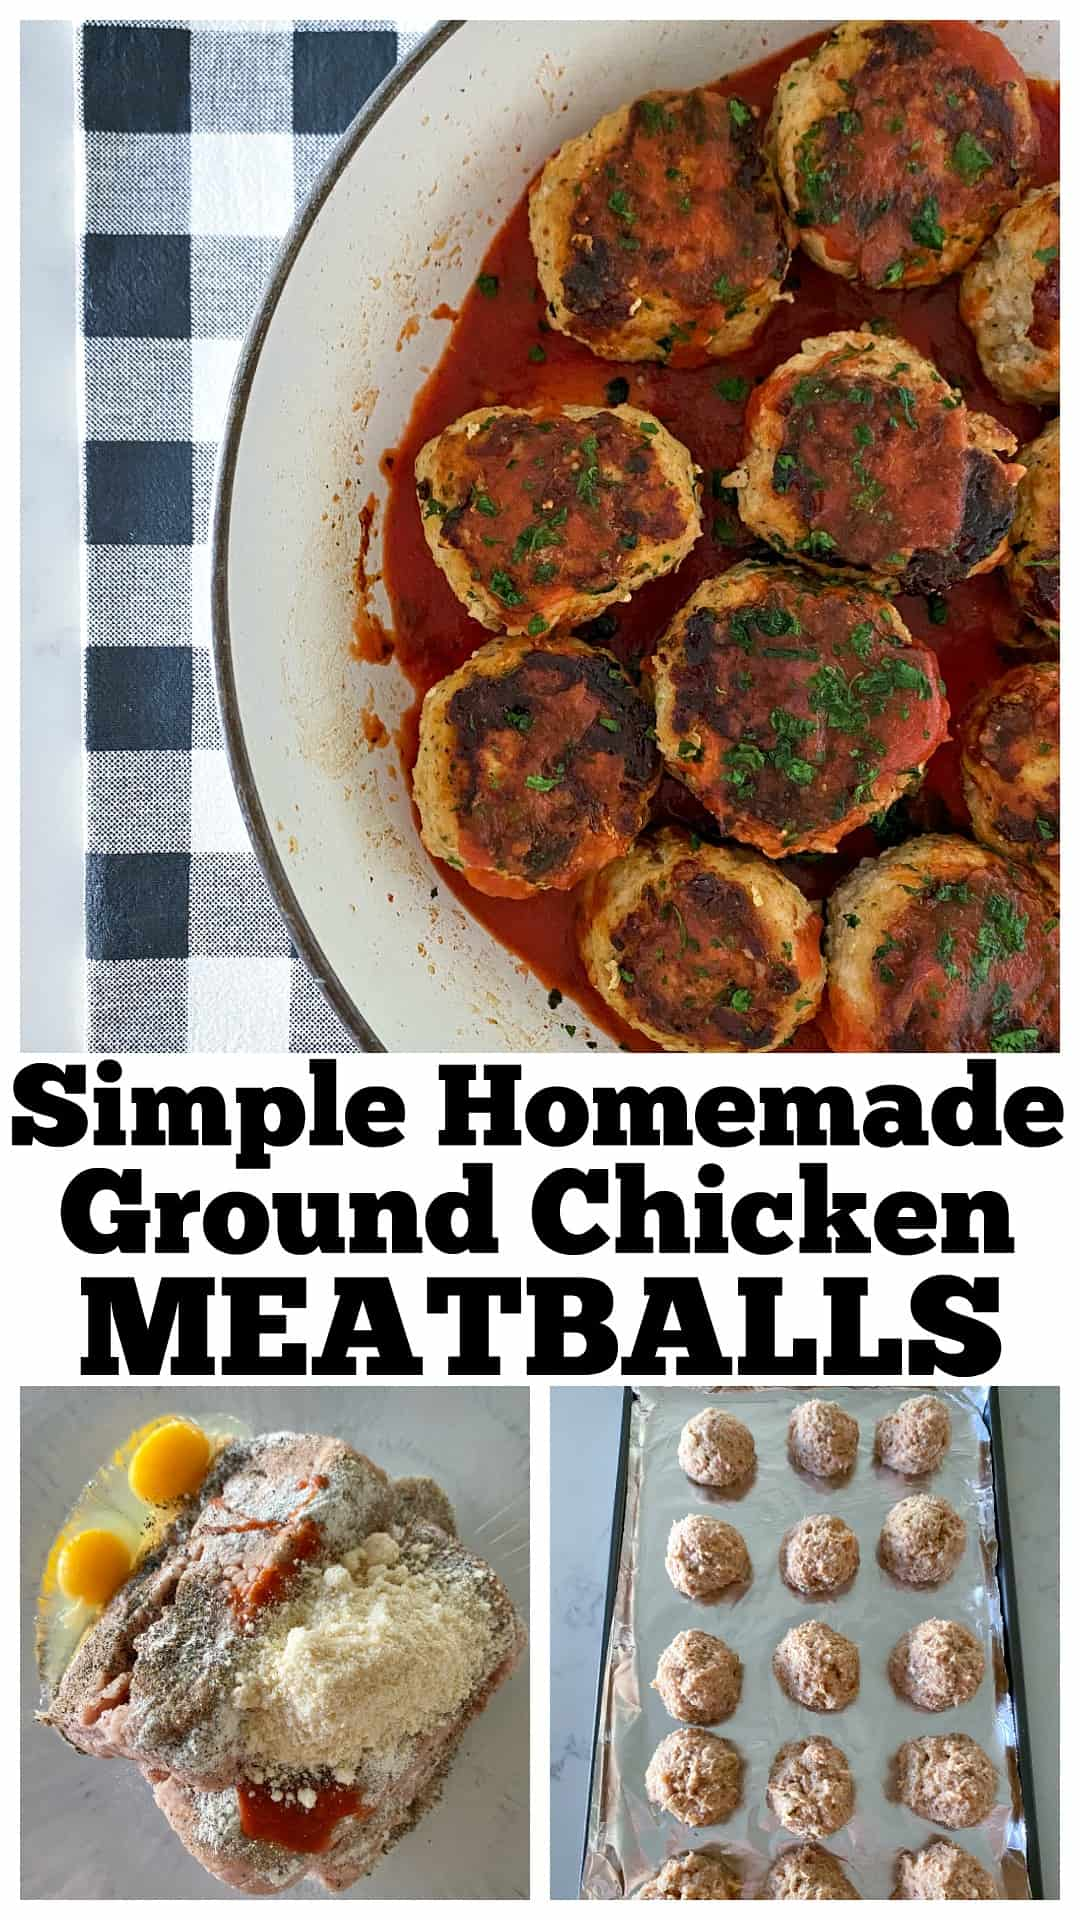 ground chicken meatballs in a bowl, on a baking sheet, and mixture in a bowl